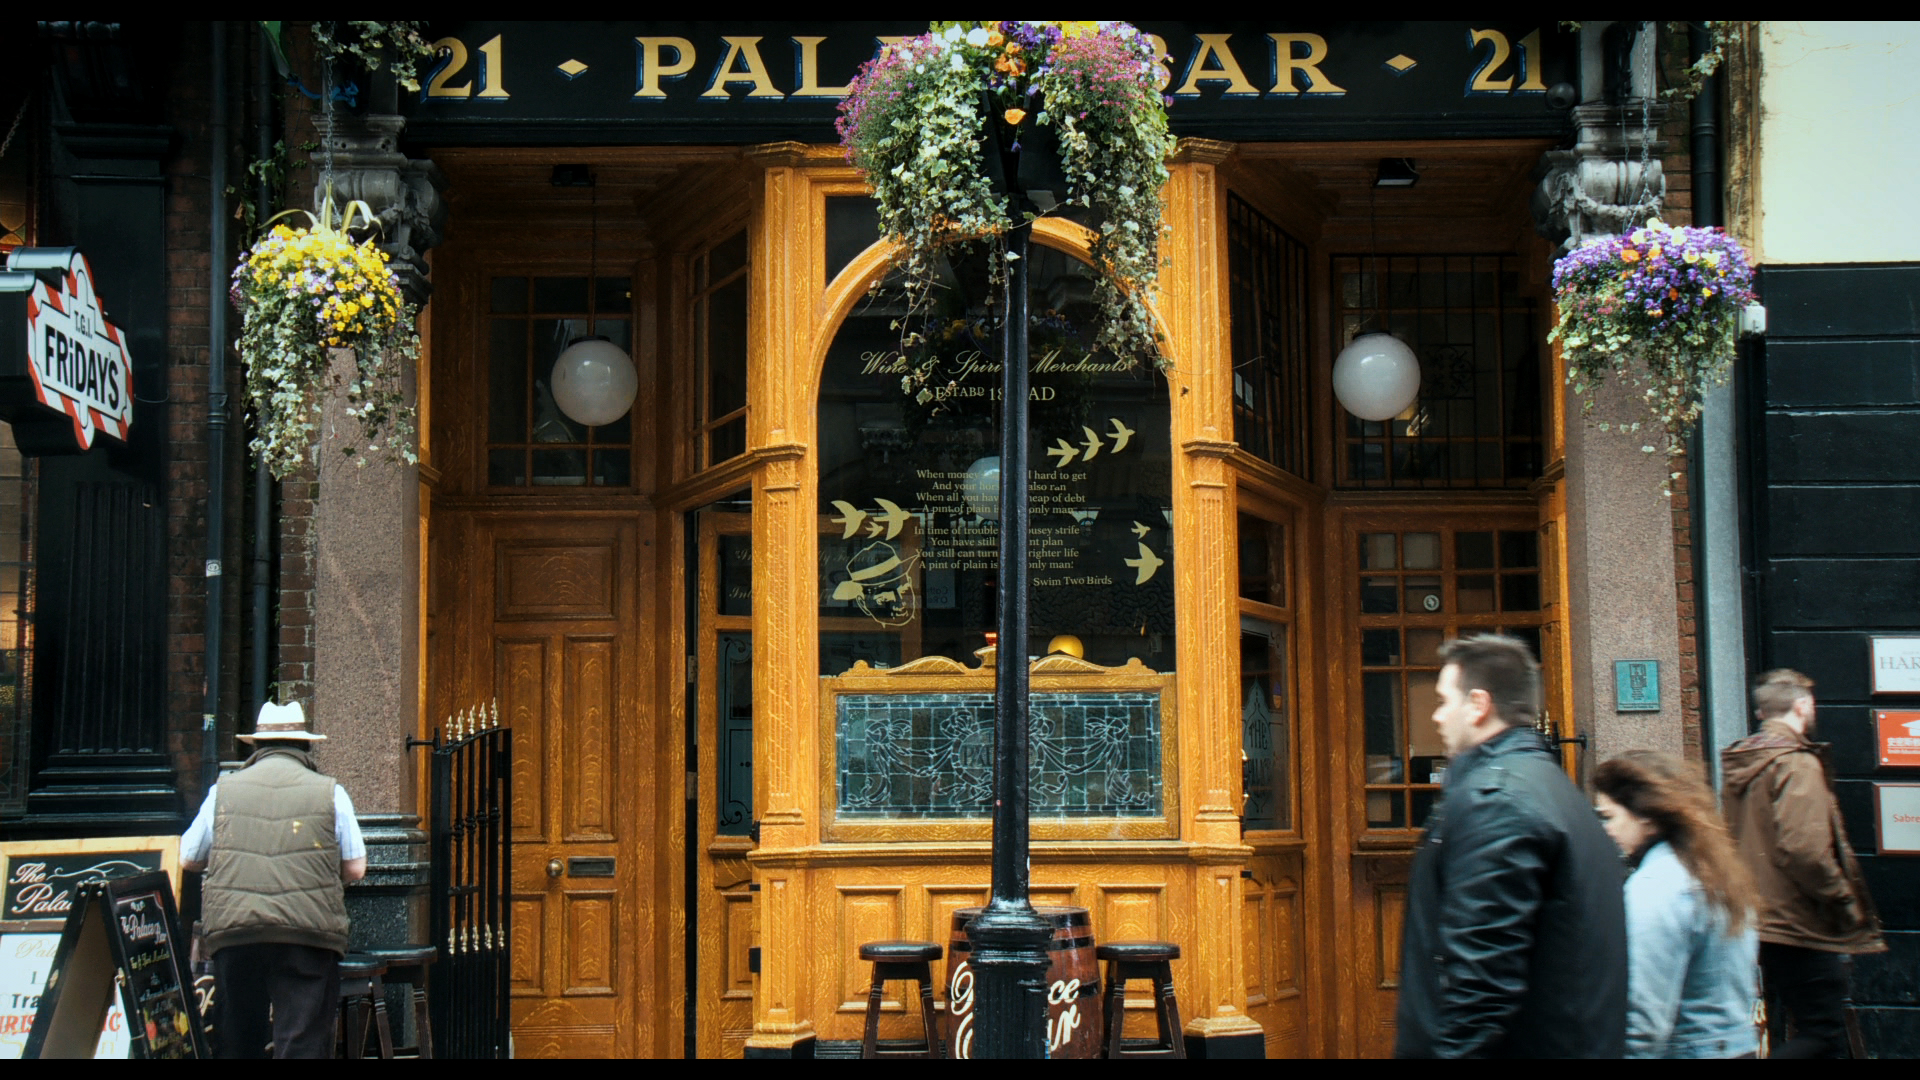 The Palace Bar, Dublin